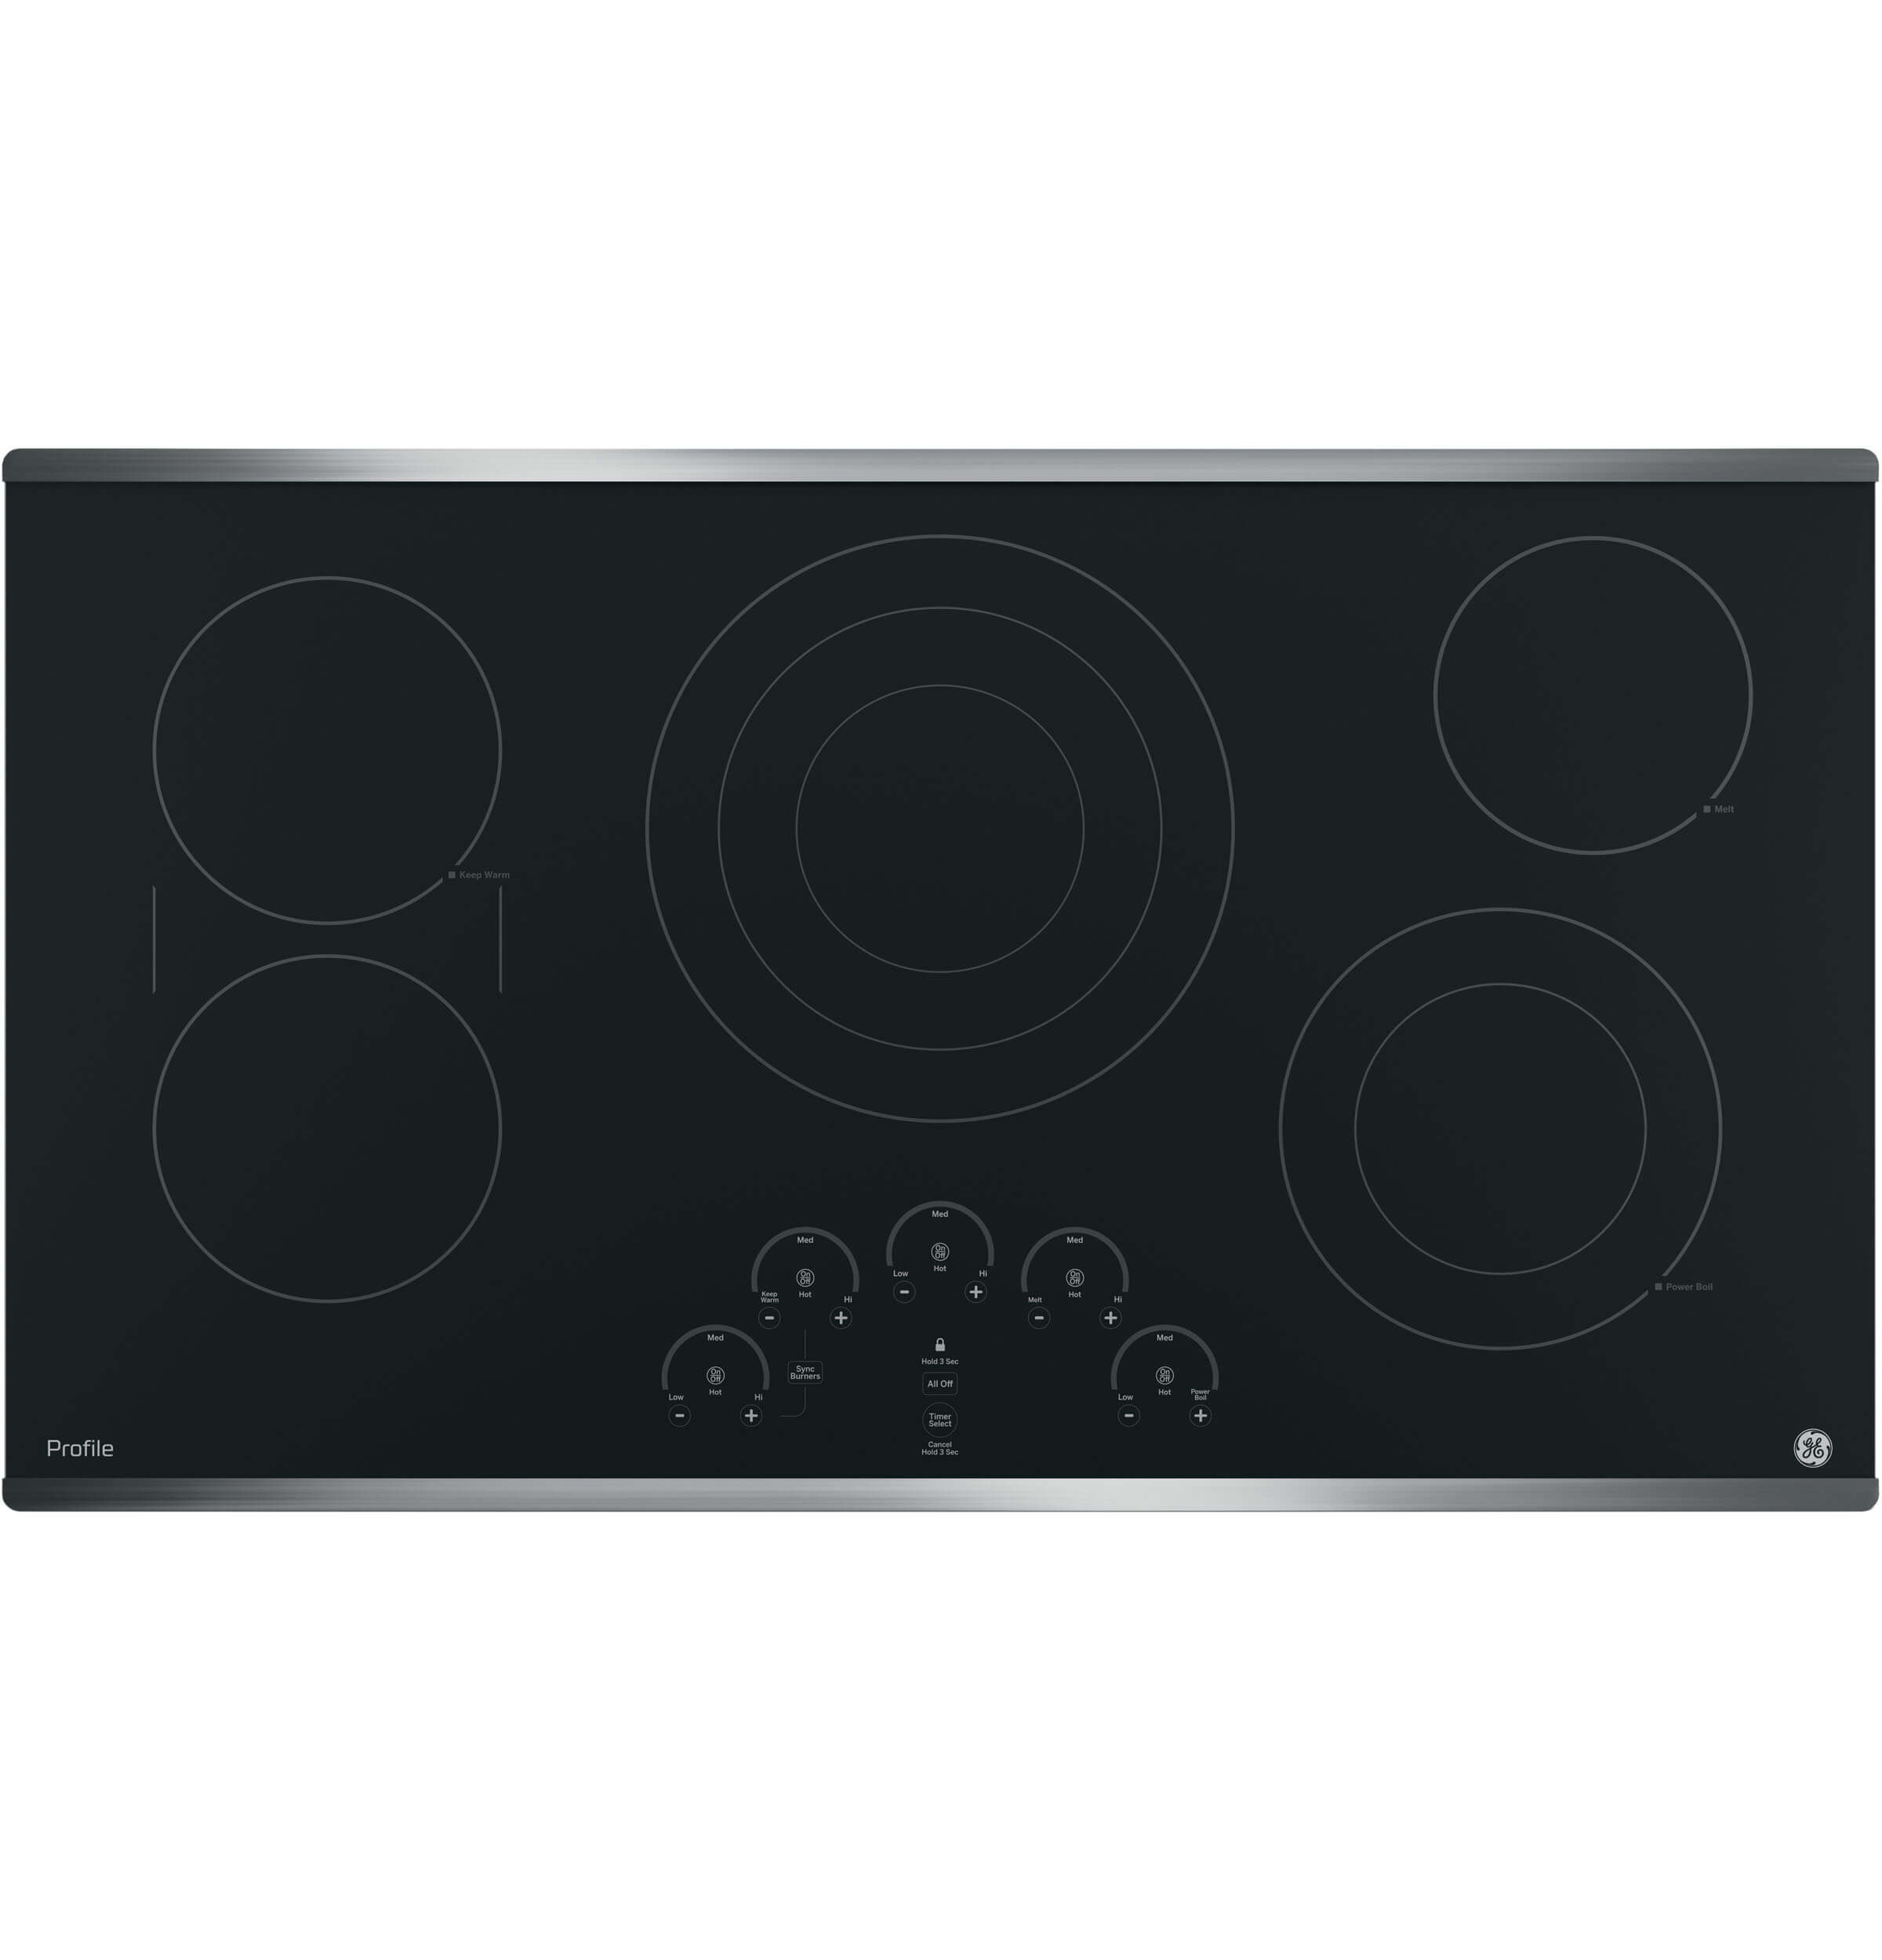 Stainless Steel Profile Series 36 inch Built-In Touch Control Cooktop